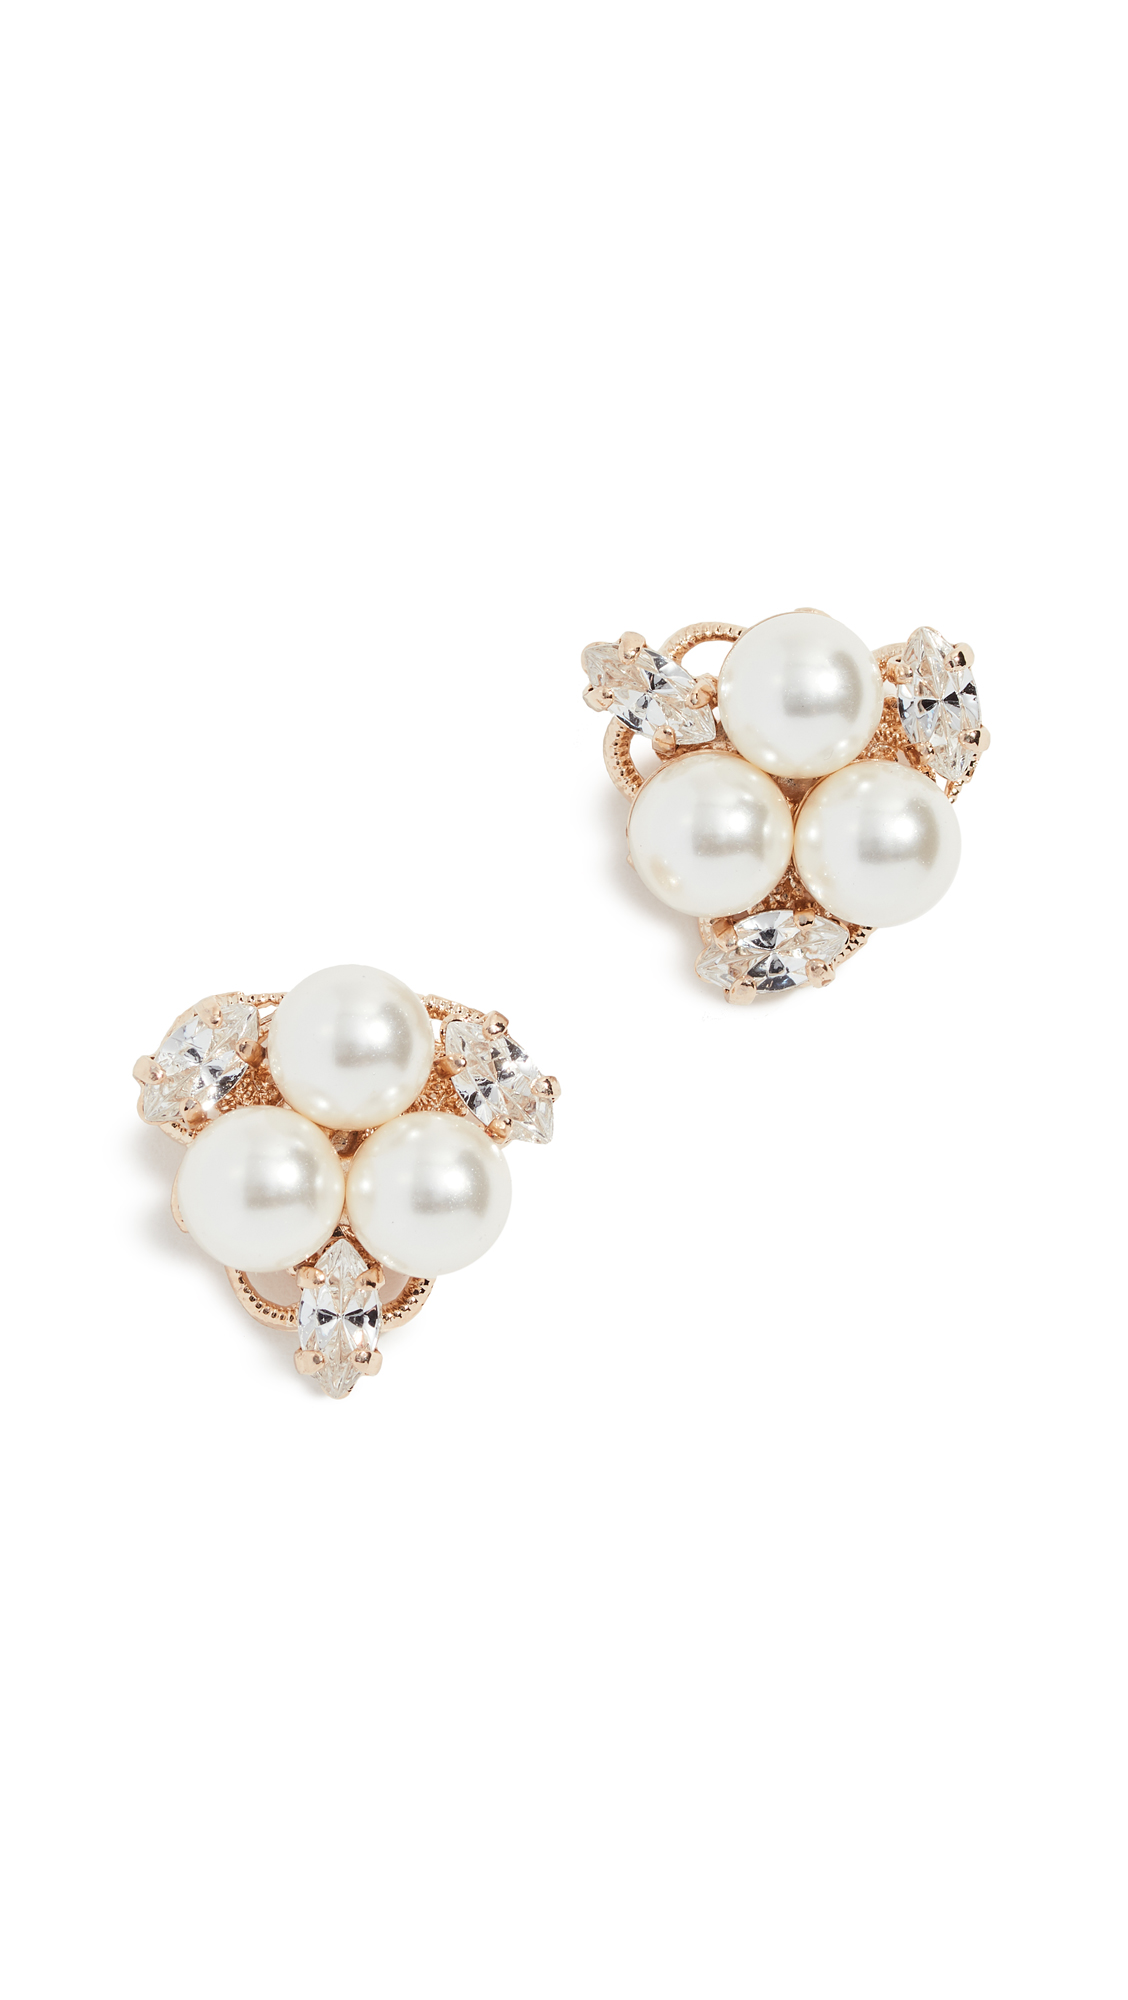 ANTON HEUNIS Glass Pearl Cluster Earrings in Yellow Gold/Pearl